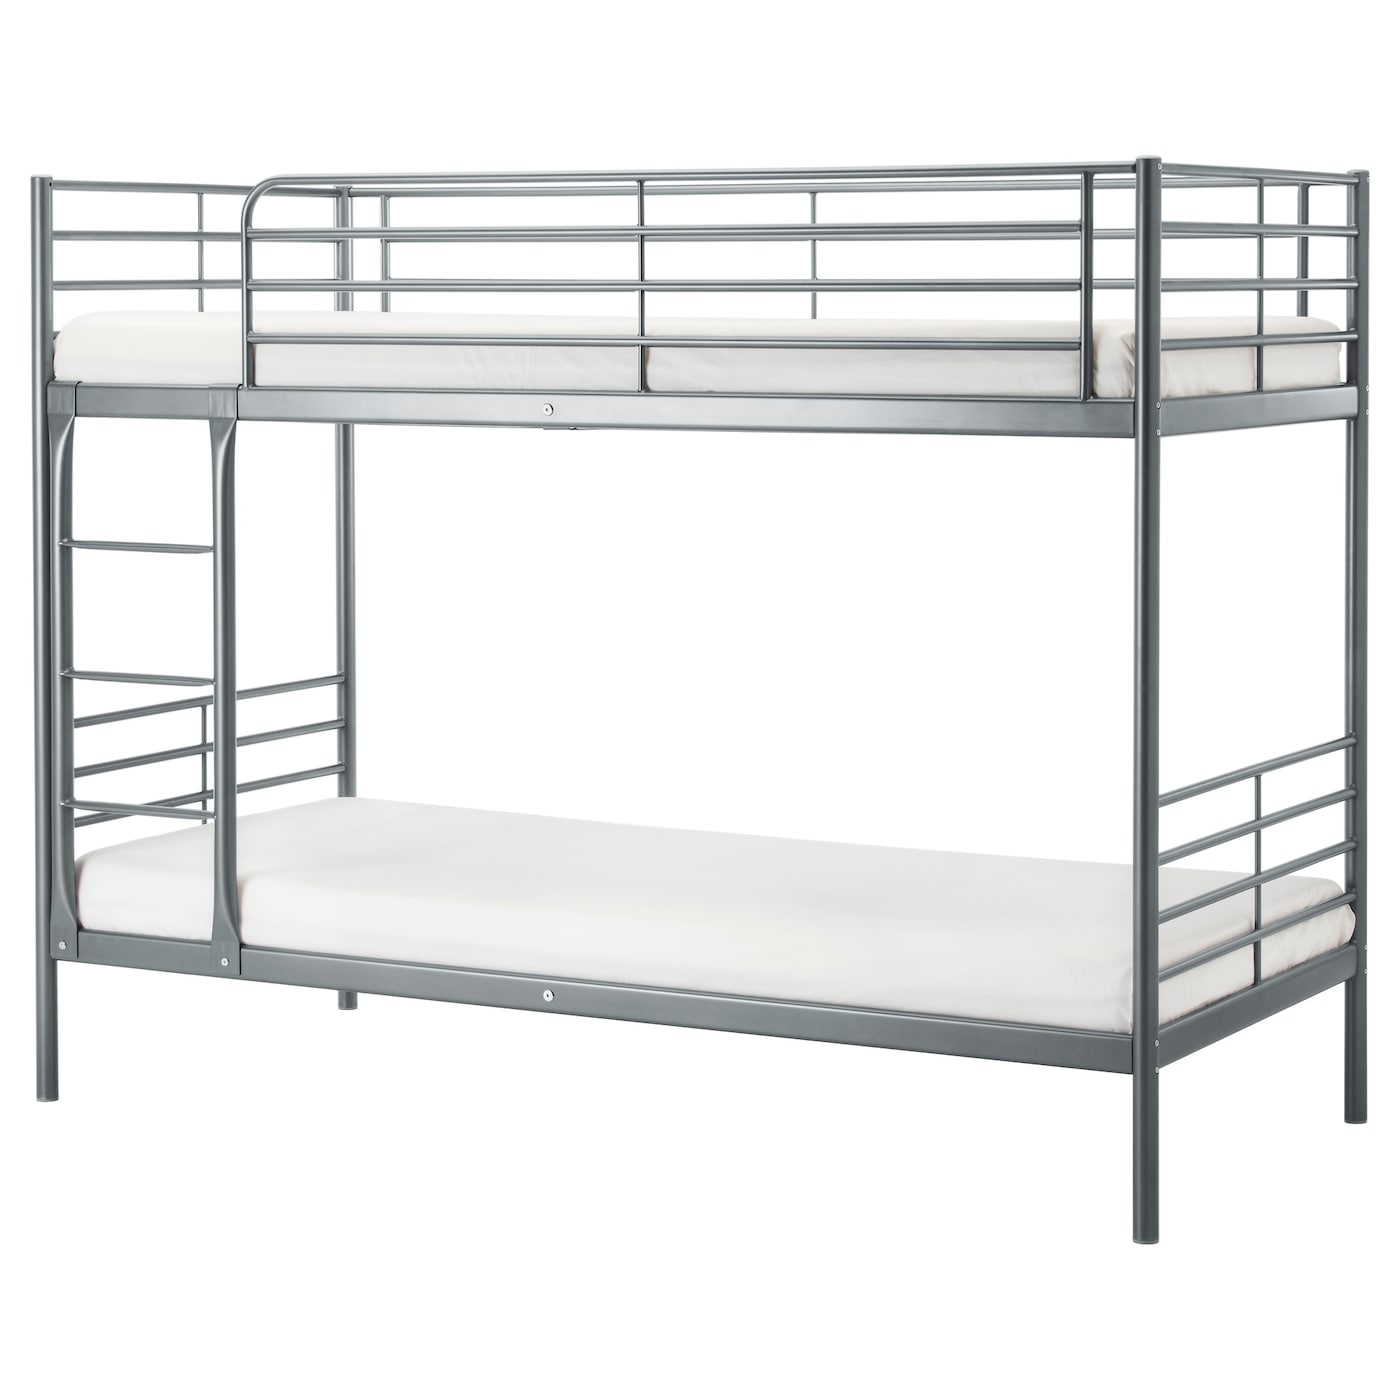 ikea svrta bunk bed frame a good solution where space is limited